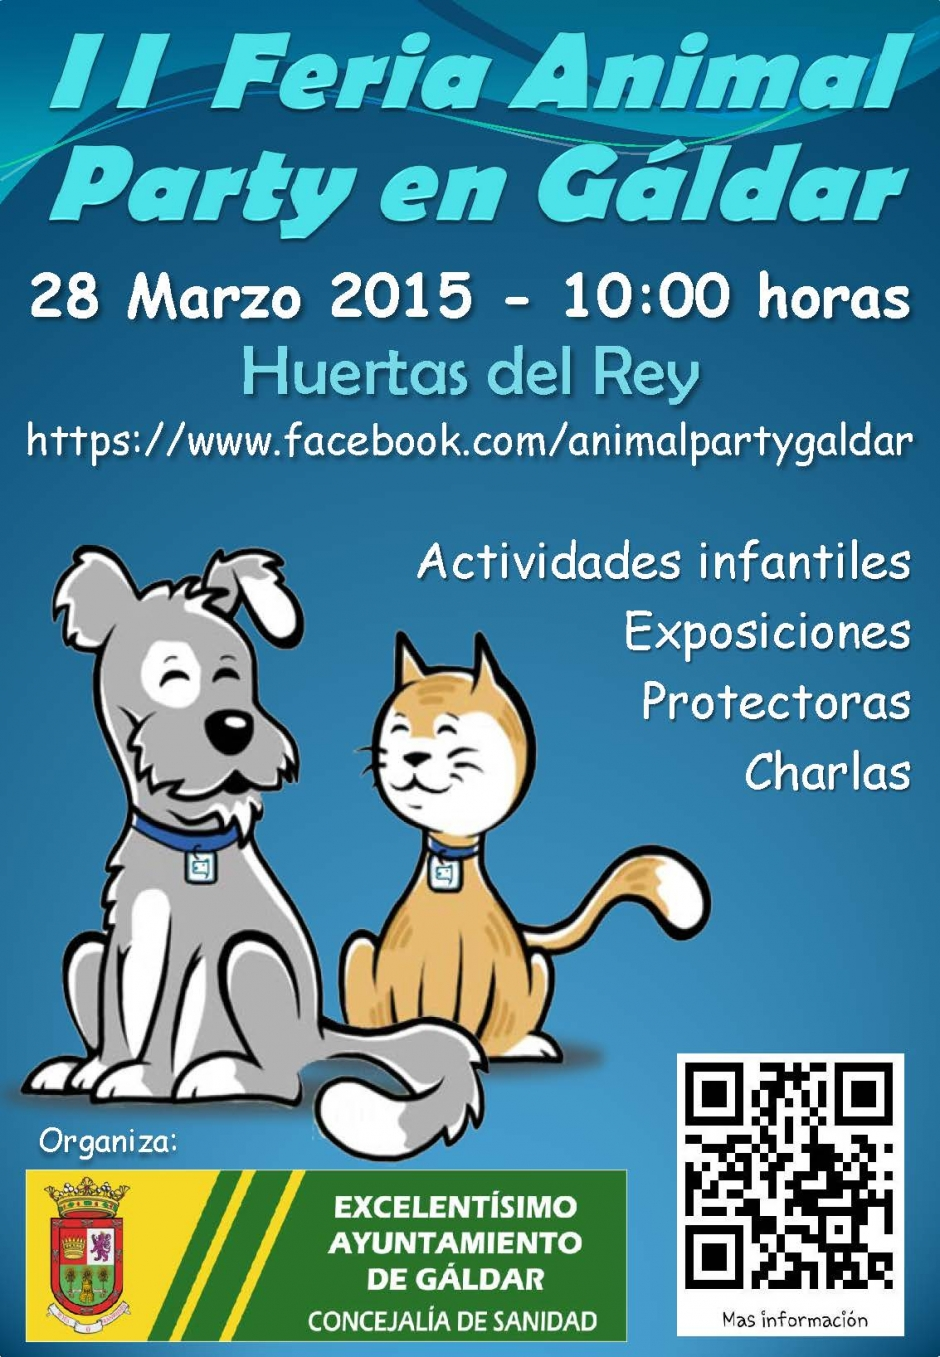 Cartel de la II Animal Party (ampliar para ver correctamente).